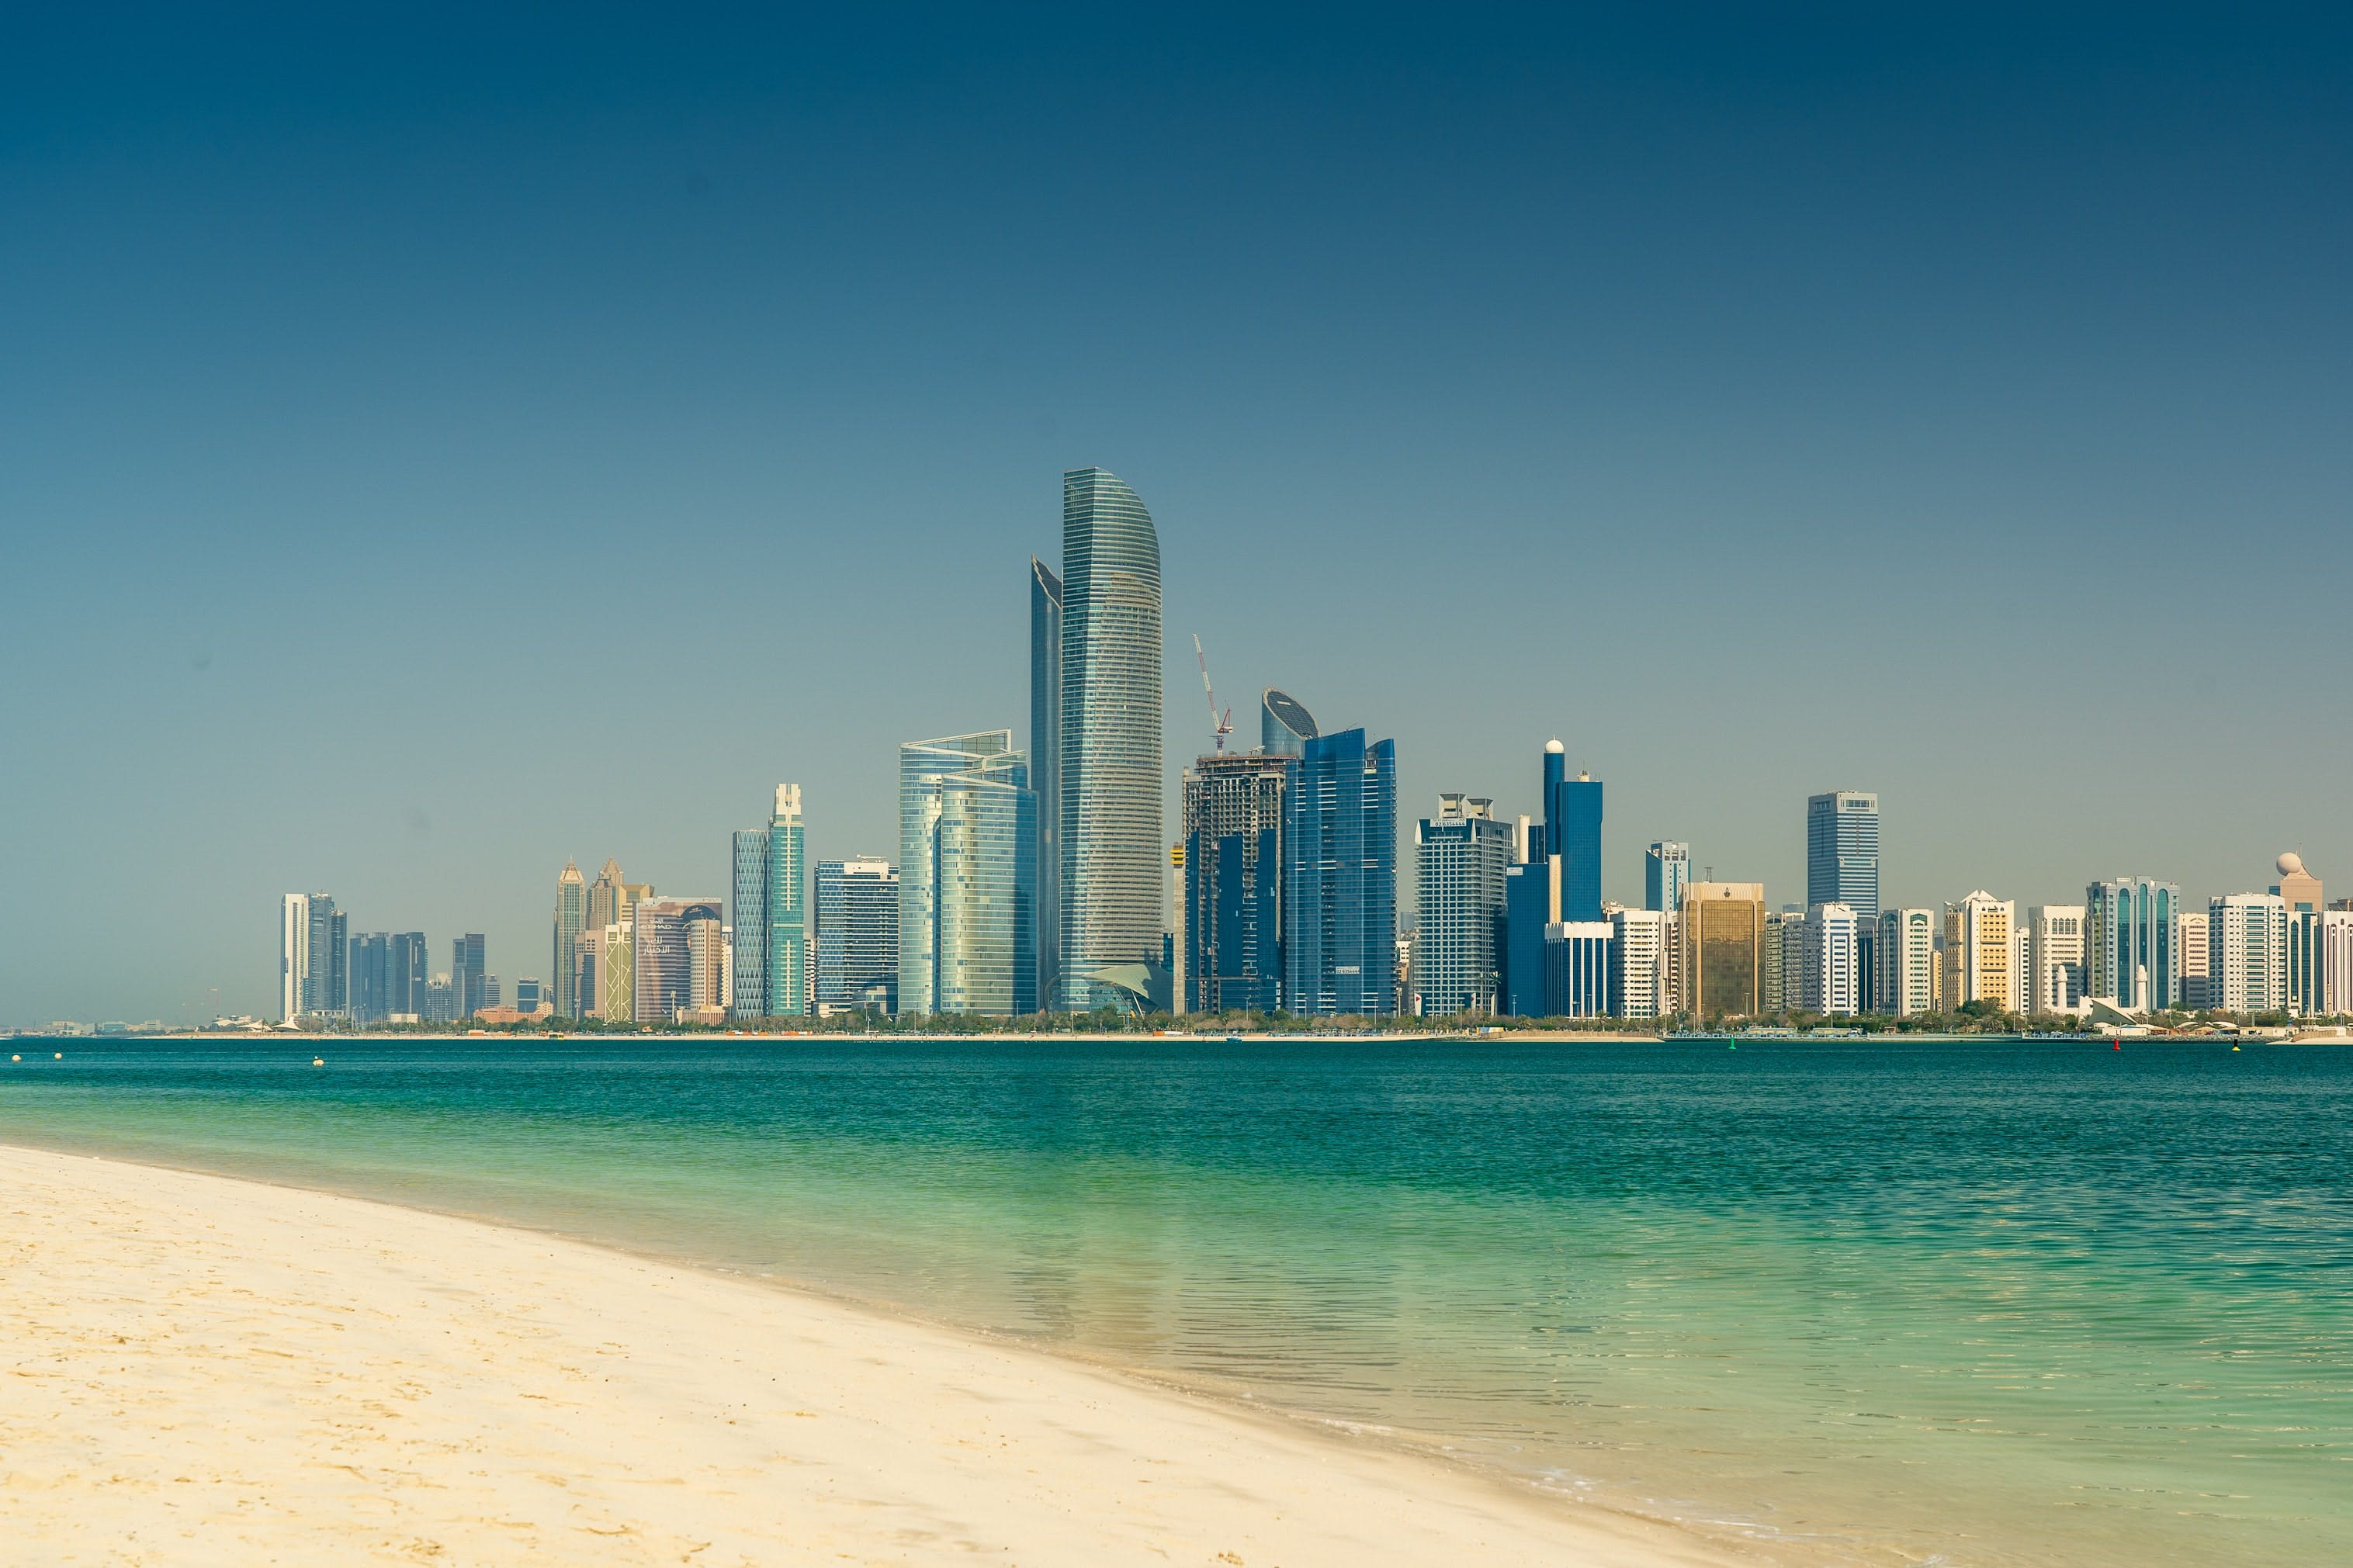 Planning a Day Trip to Abu Dhabi from Dubai? Here's All You Need to Know